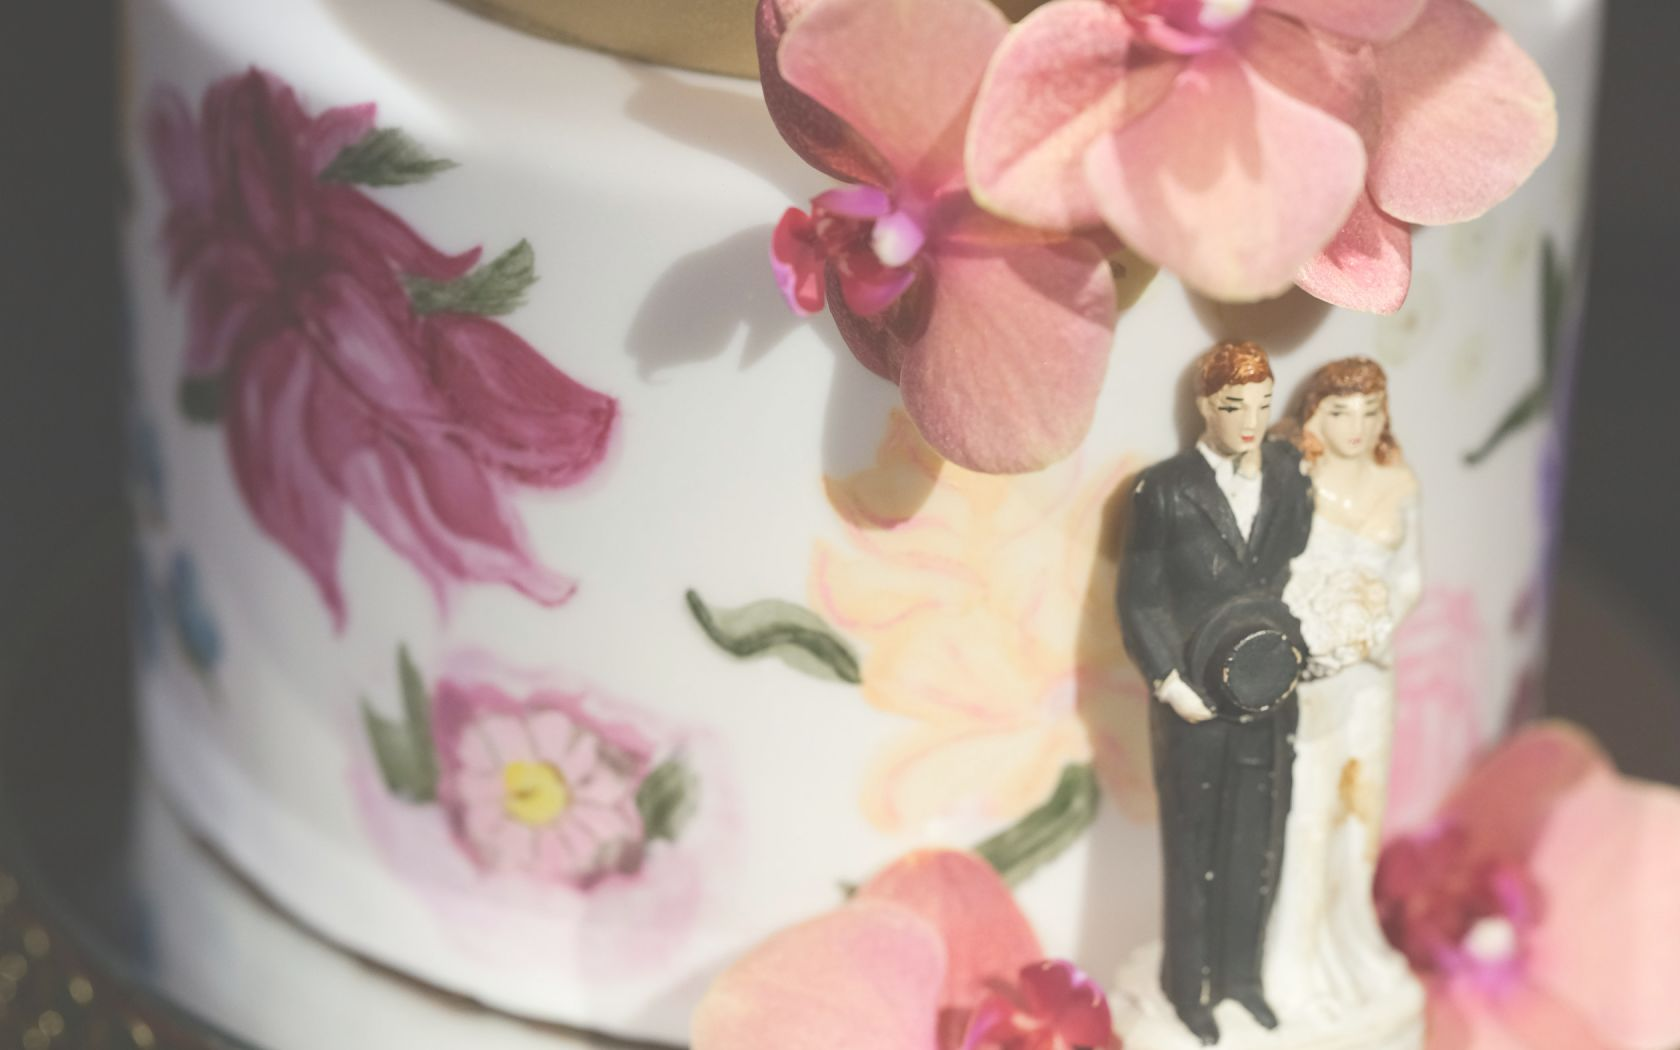 A Close Up Of A Wedding Cake